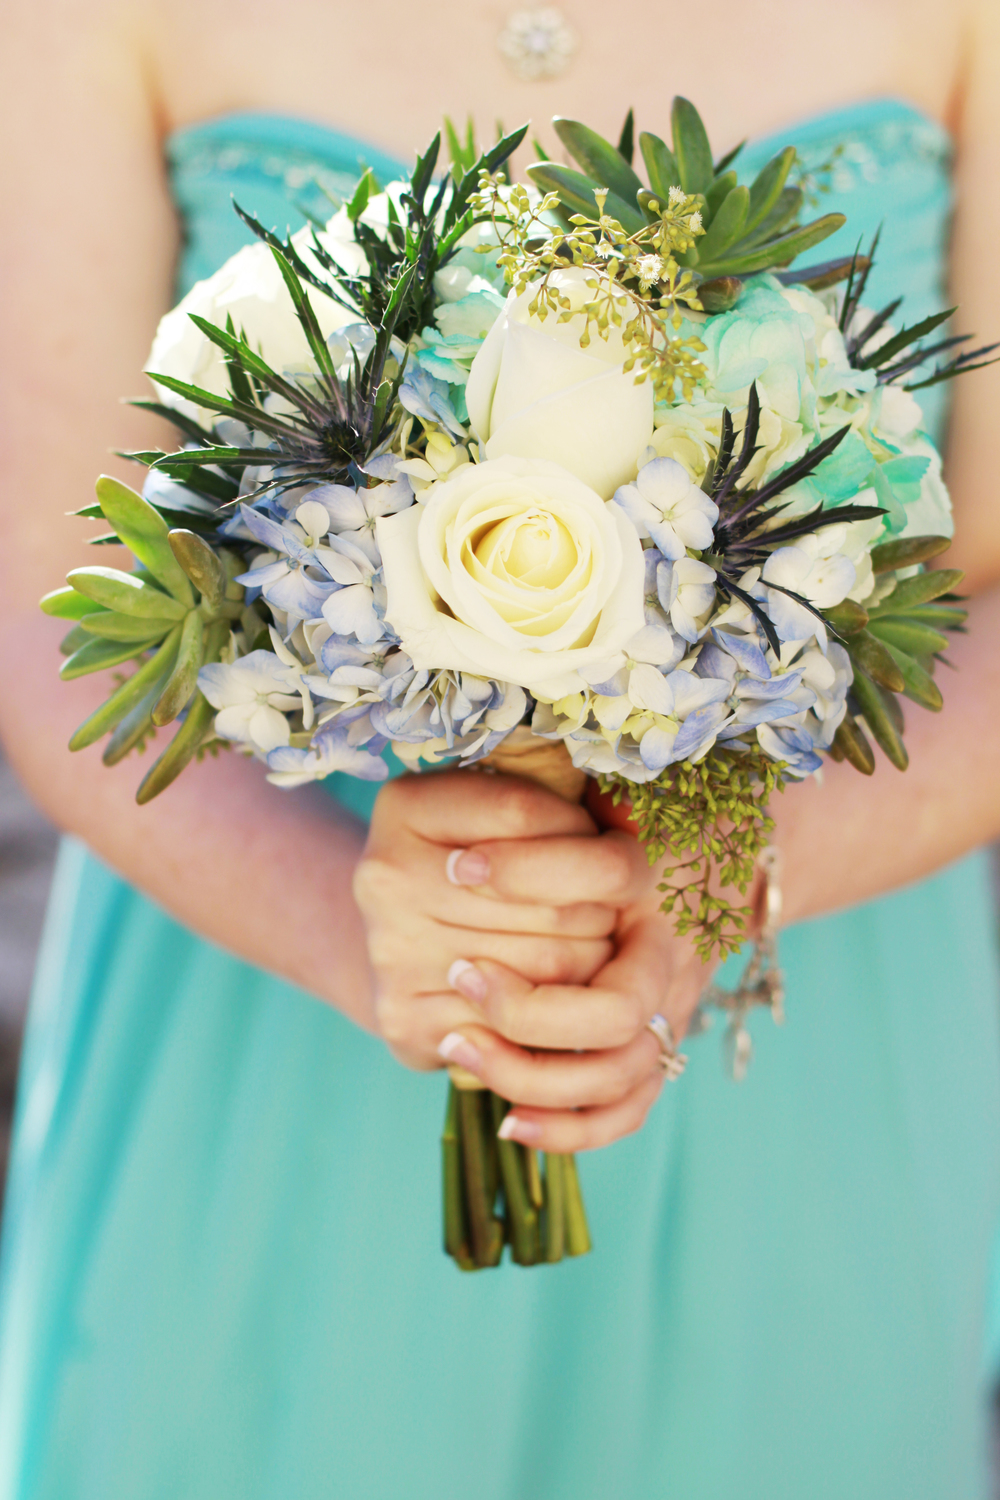 Bridesmaids carried bouquets of hydrangea, thistle, roses, succulents, and seeded eucalyptus